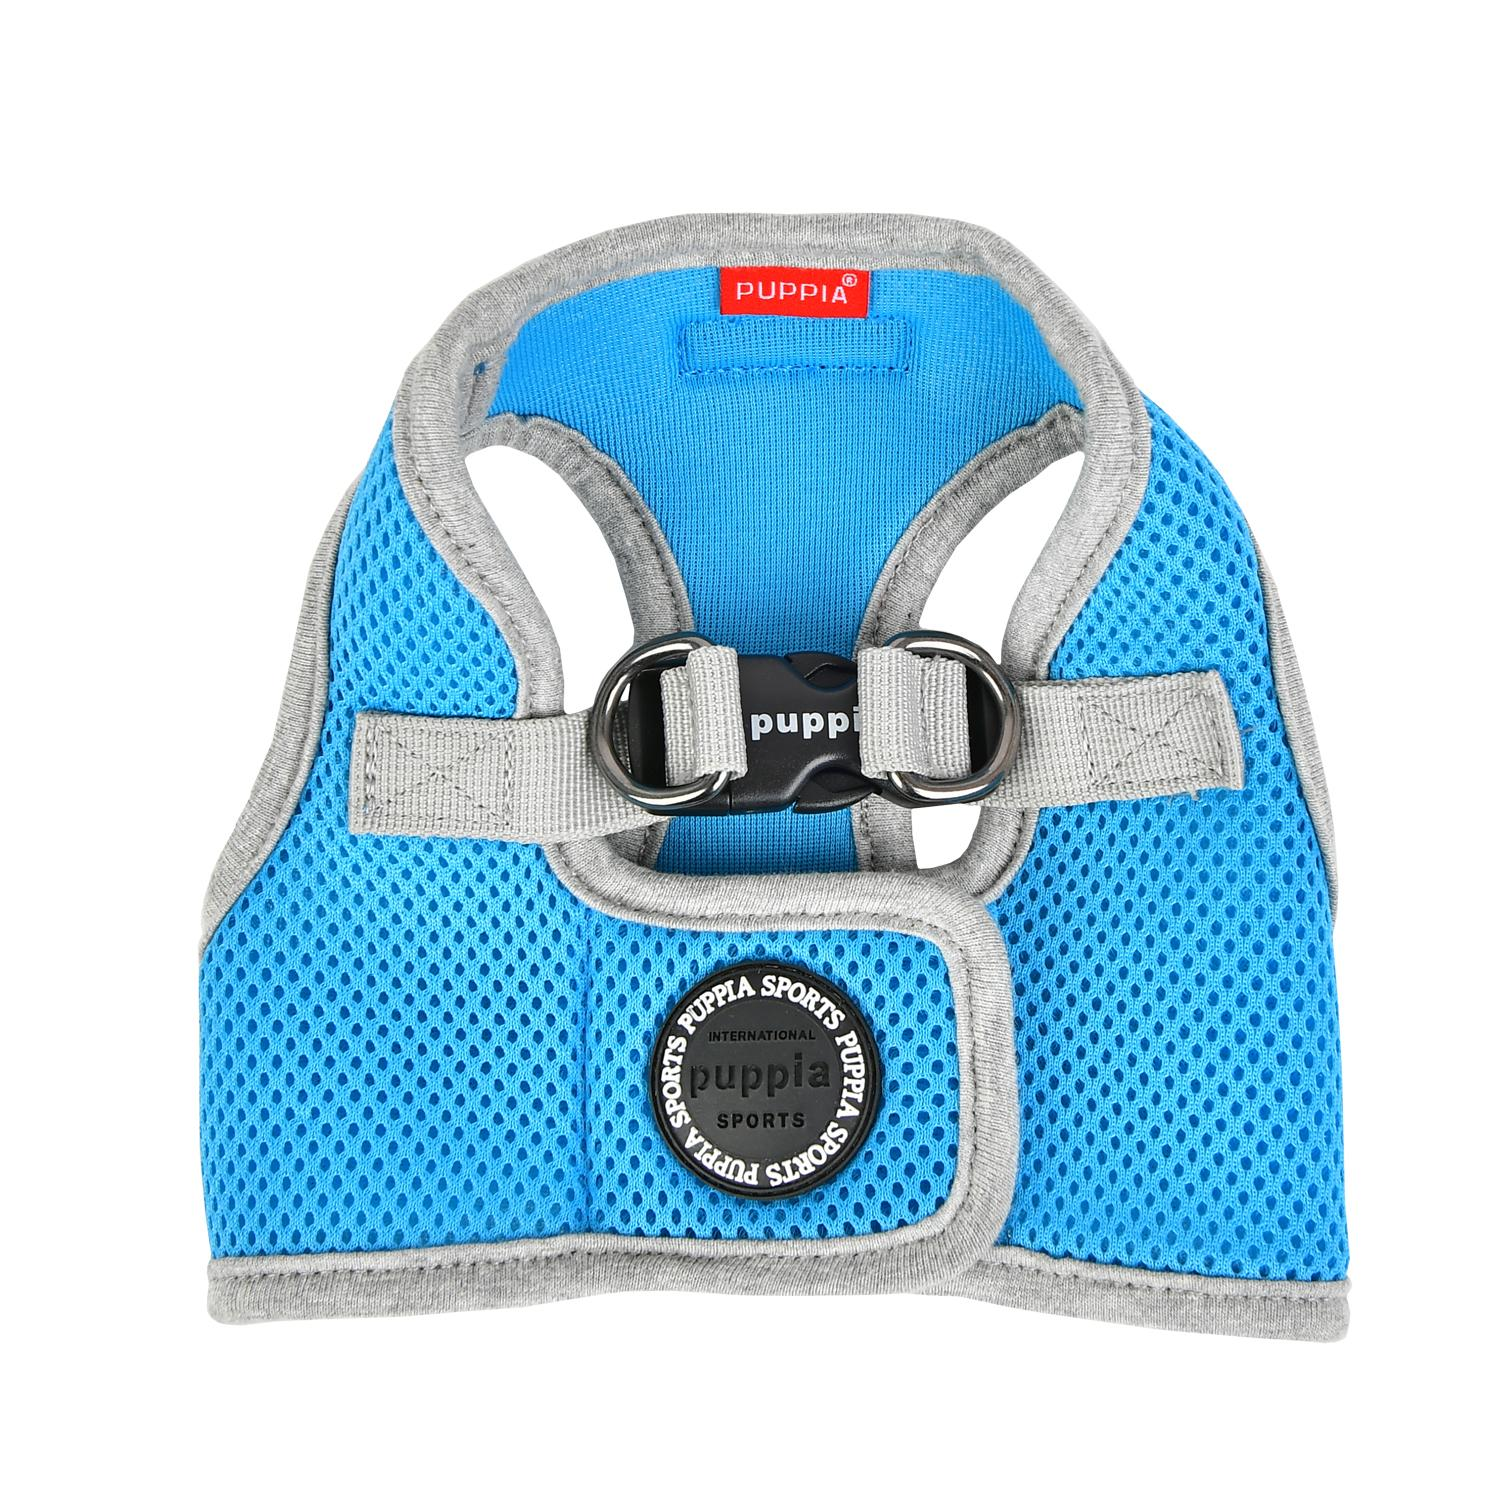 Soft Mesh Vest Dog Harness by Puppia - Sky Blue